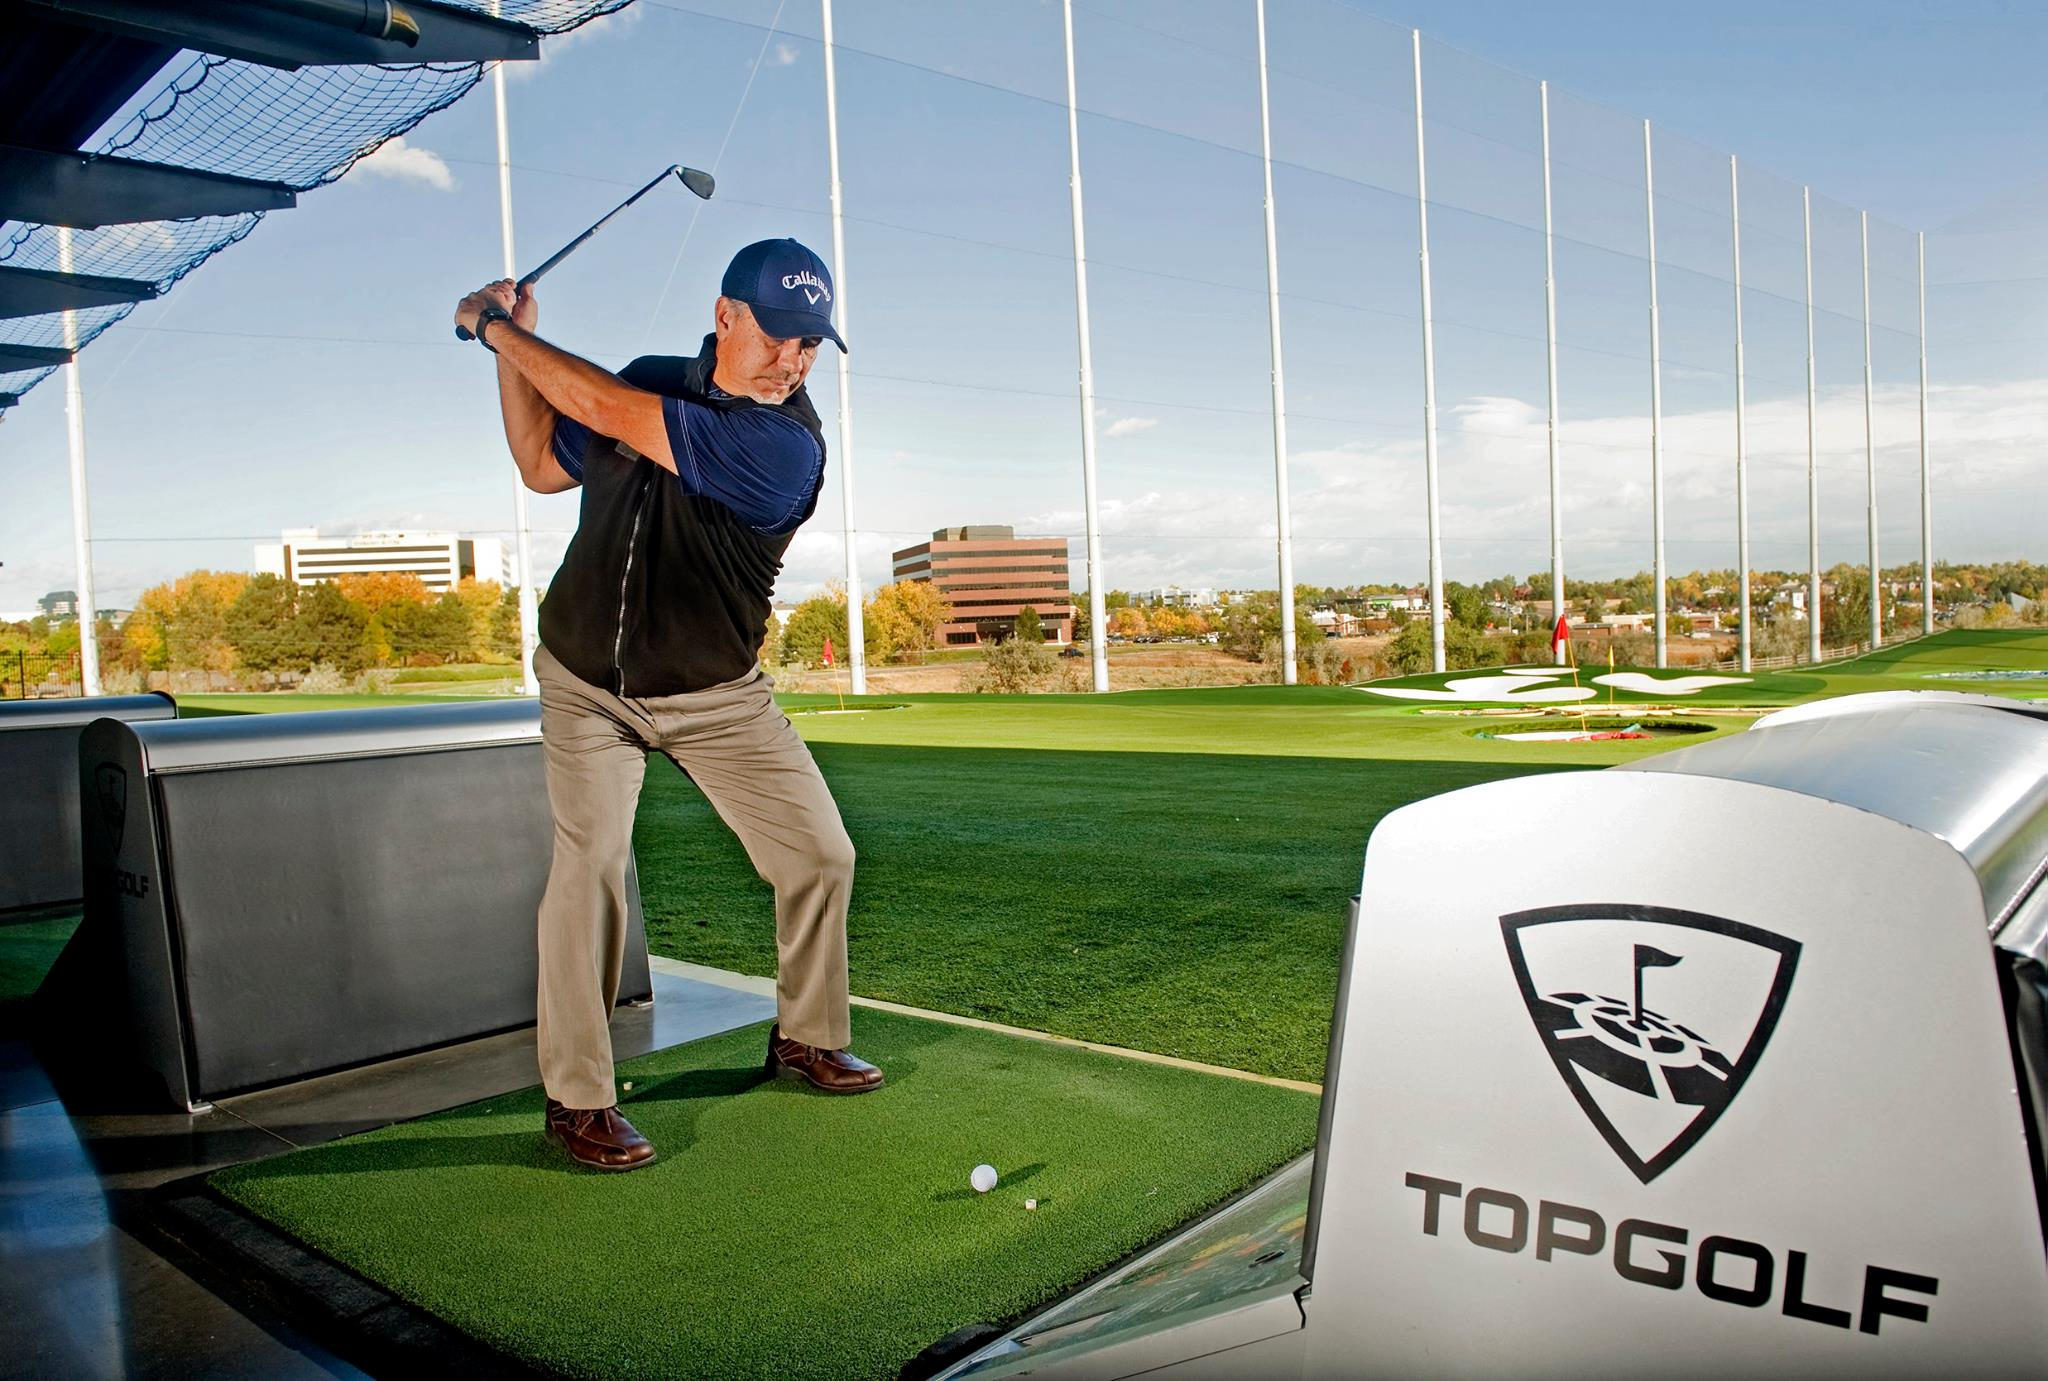 Photo credit: Topgolf Facebook page